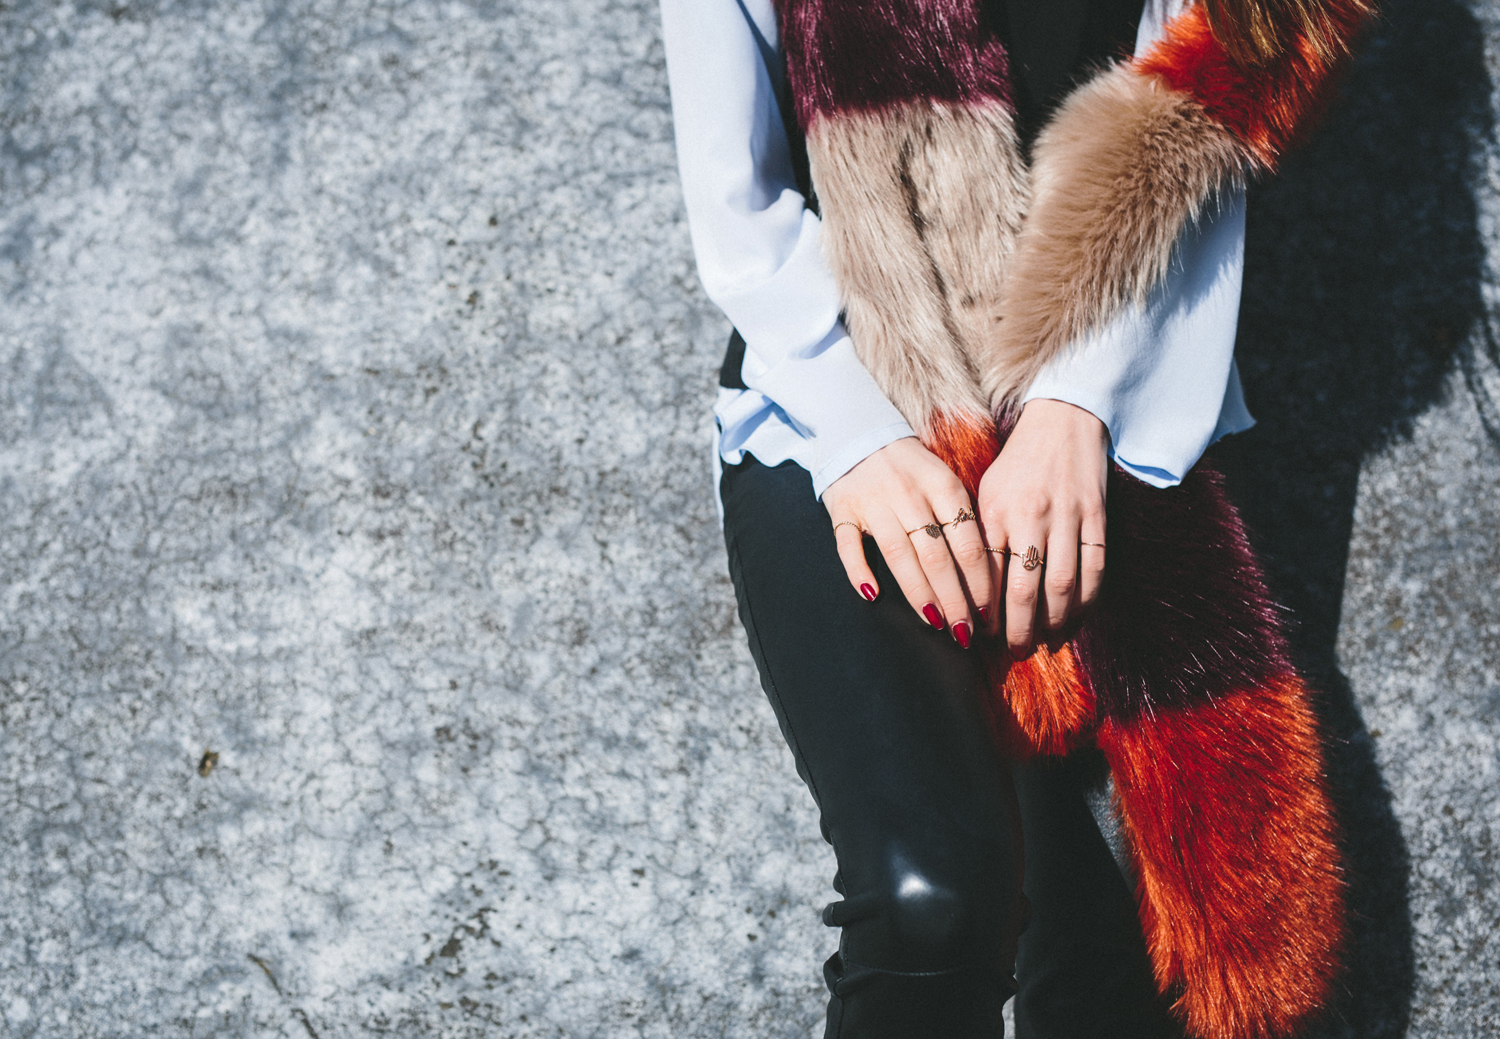 AYS_YUVA_LEATHER_PANTS_STAND_OFFICIAL_FAKE_FUR_08